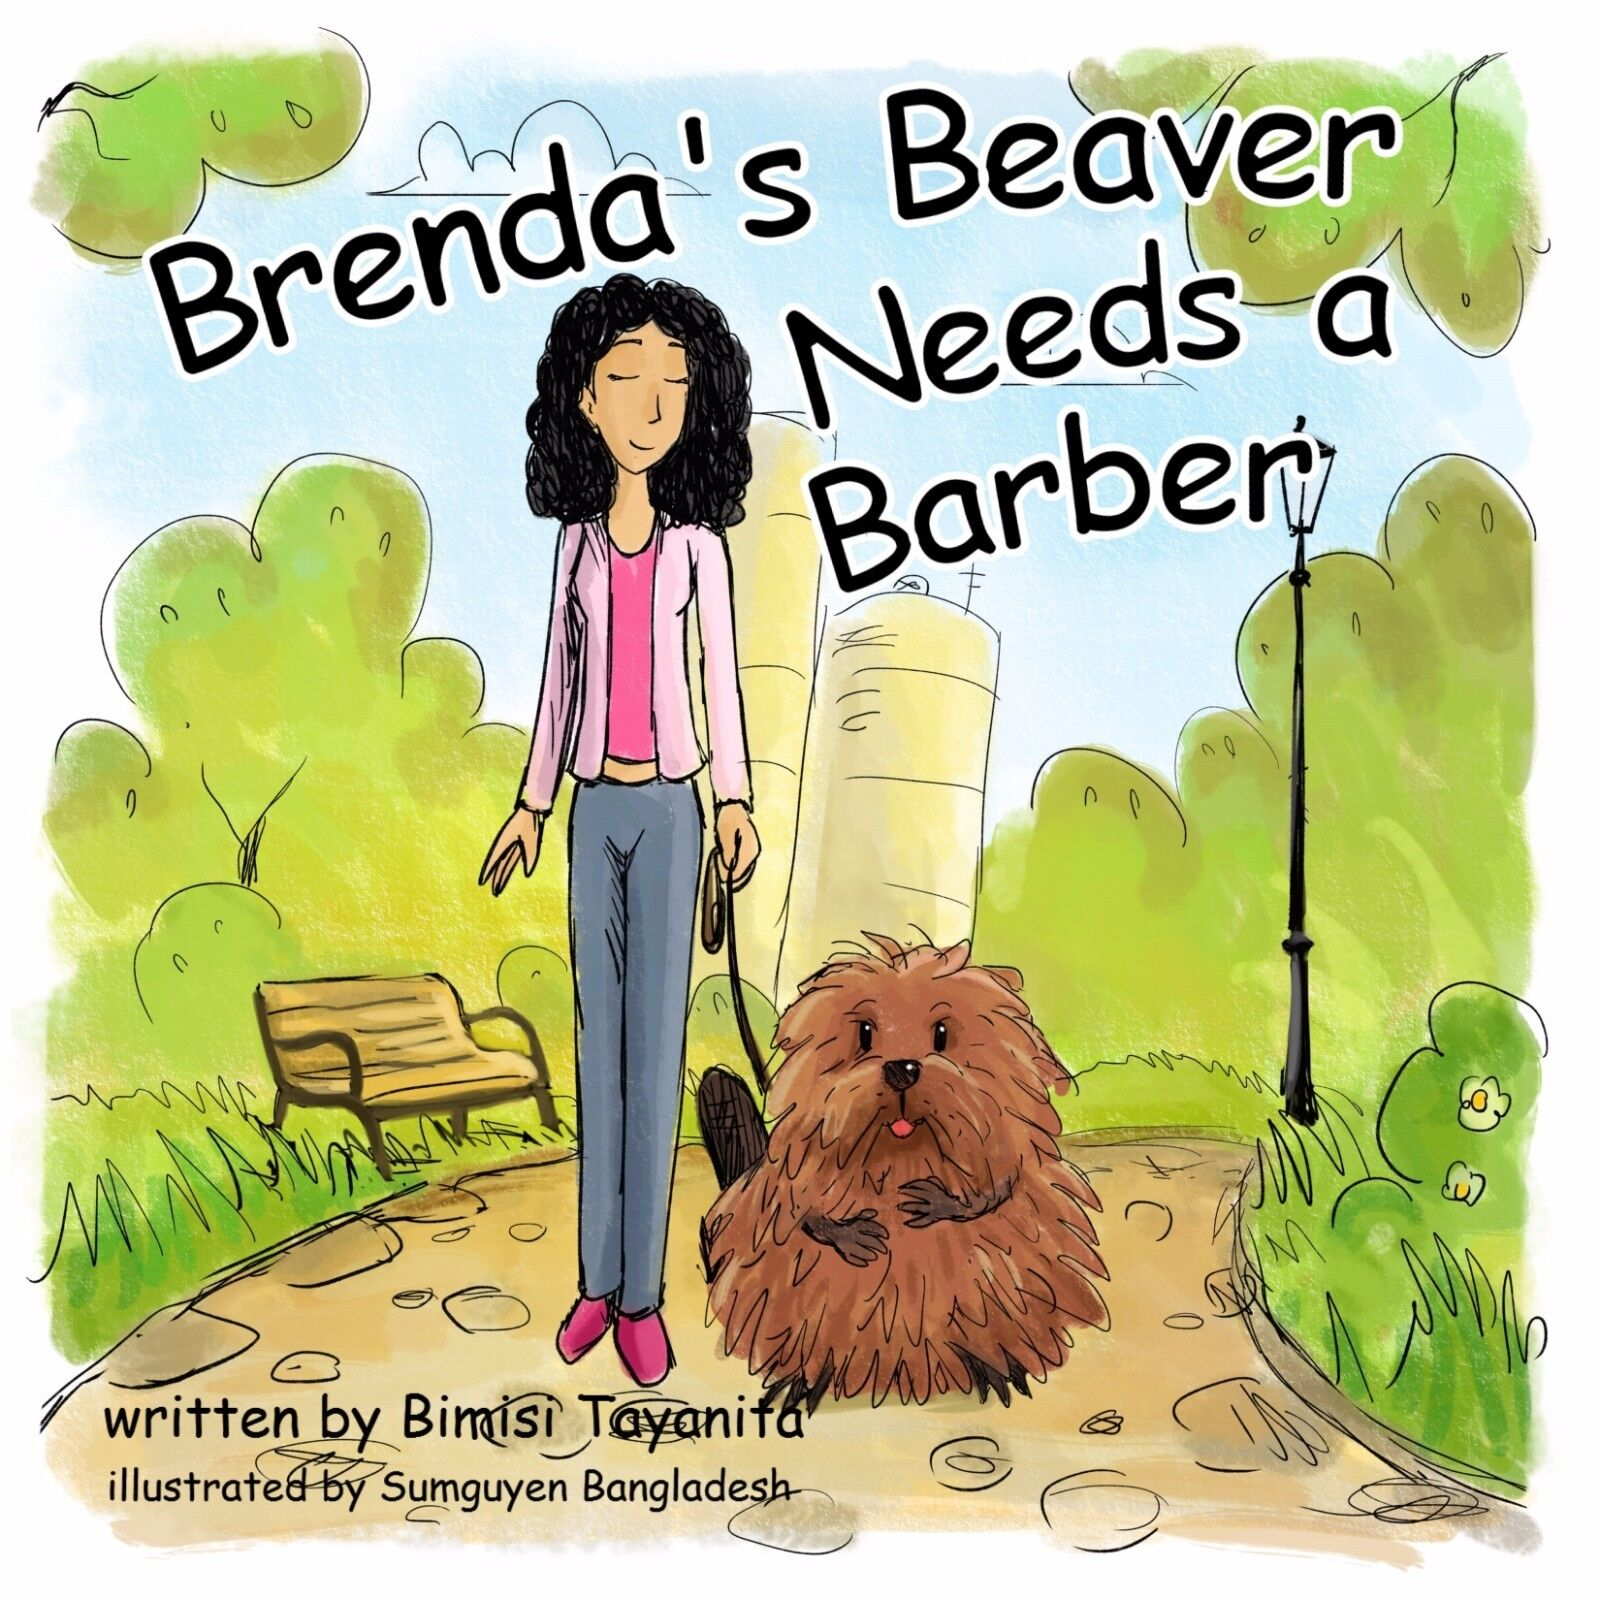 Image 1 - Brenda's Beaver Needs a Barber                 HARD COVER--Physical Book